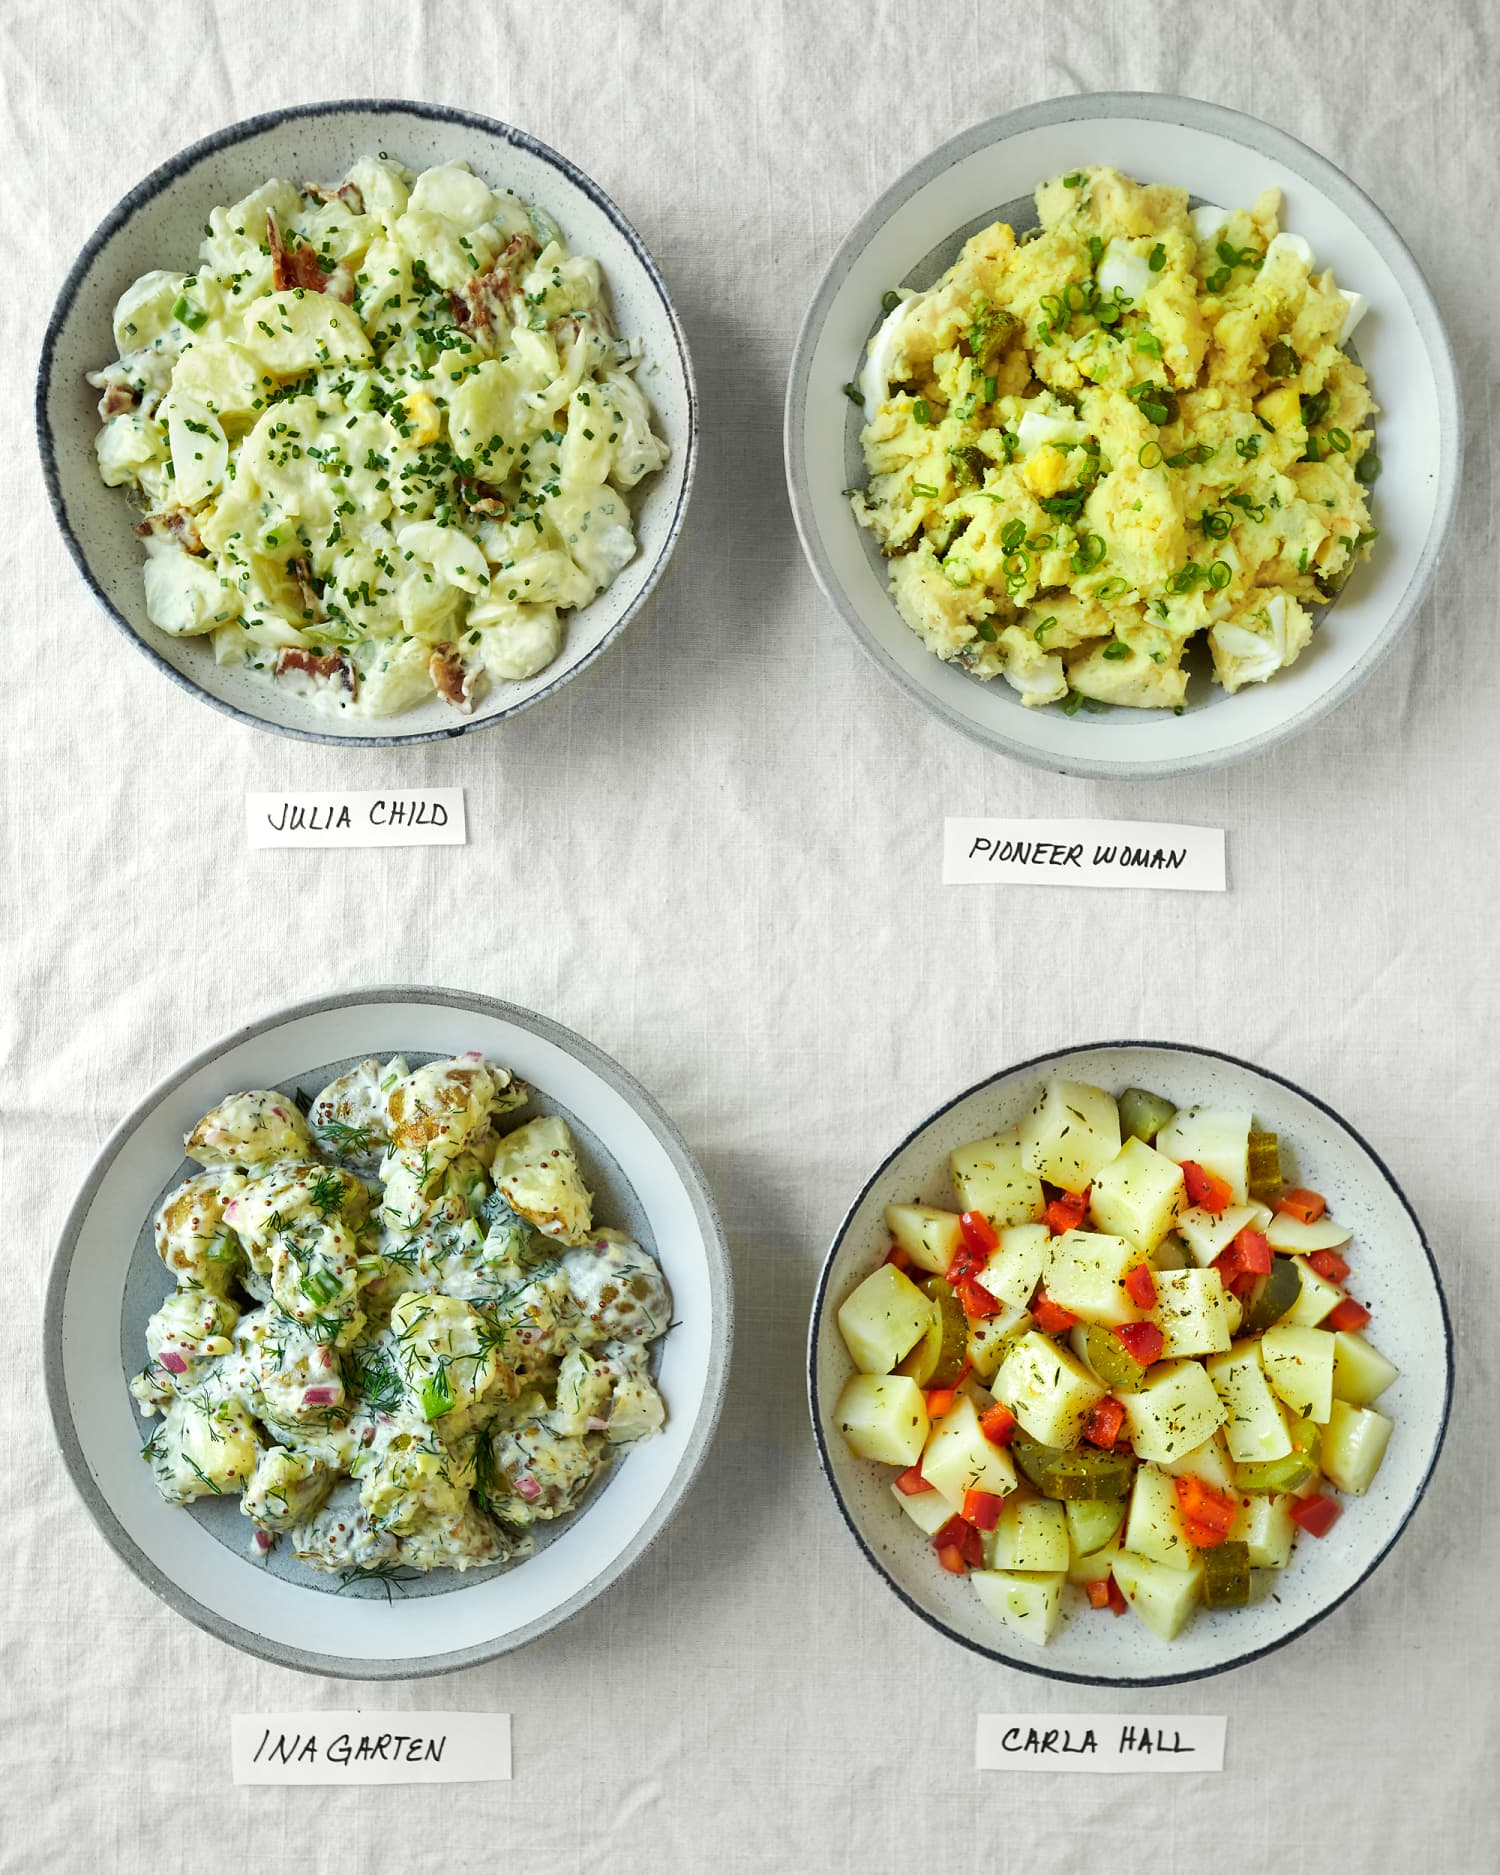 We Tried 4 Famous Potato Salad Recipes (and the Results Were Extra-Surprising!)